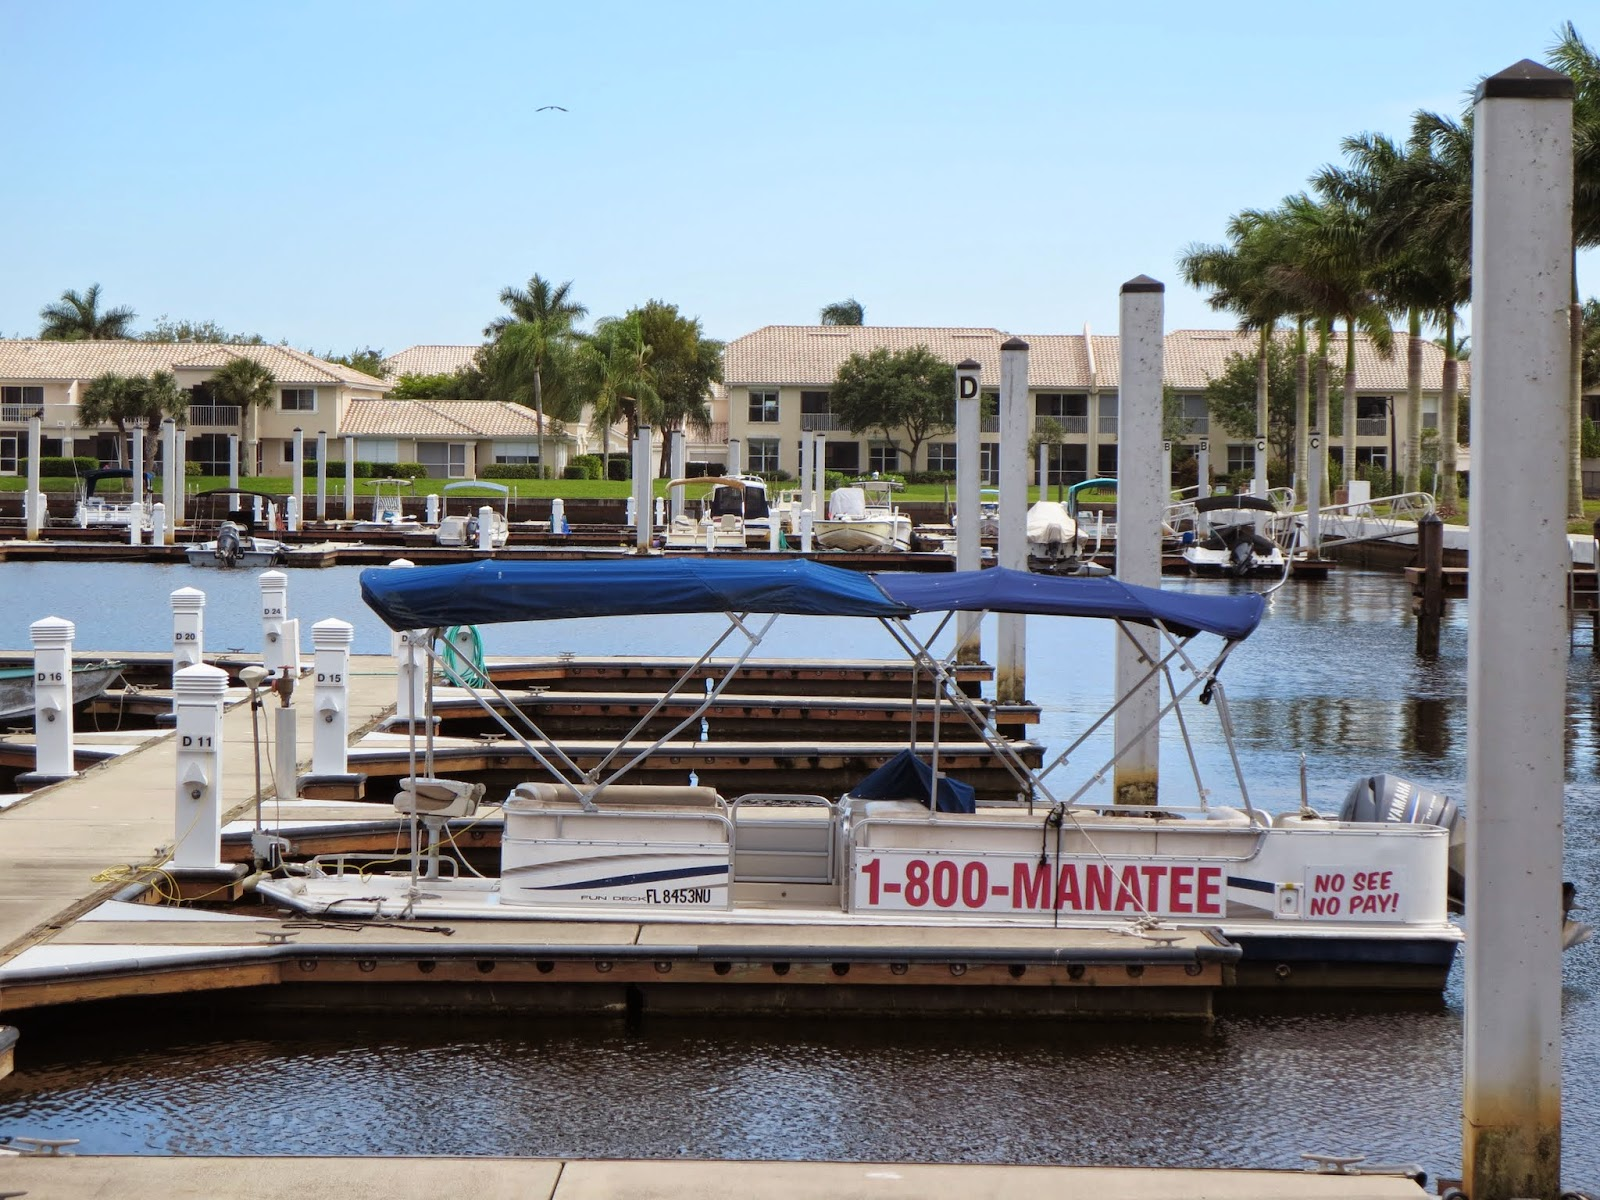 Manatee Sightseeing Eco-Adventures boat in Naples, Florida at the edge of the Everglades